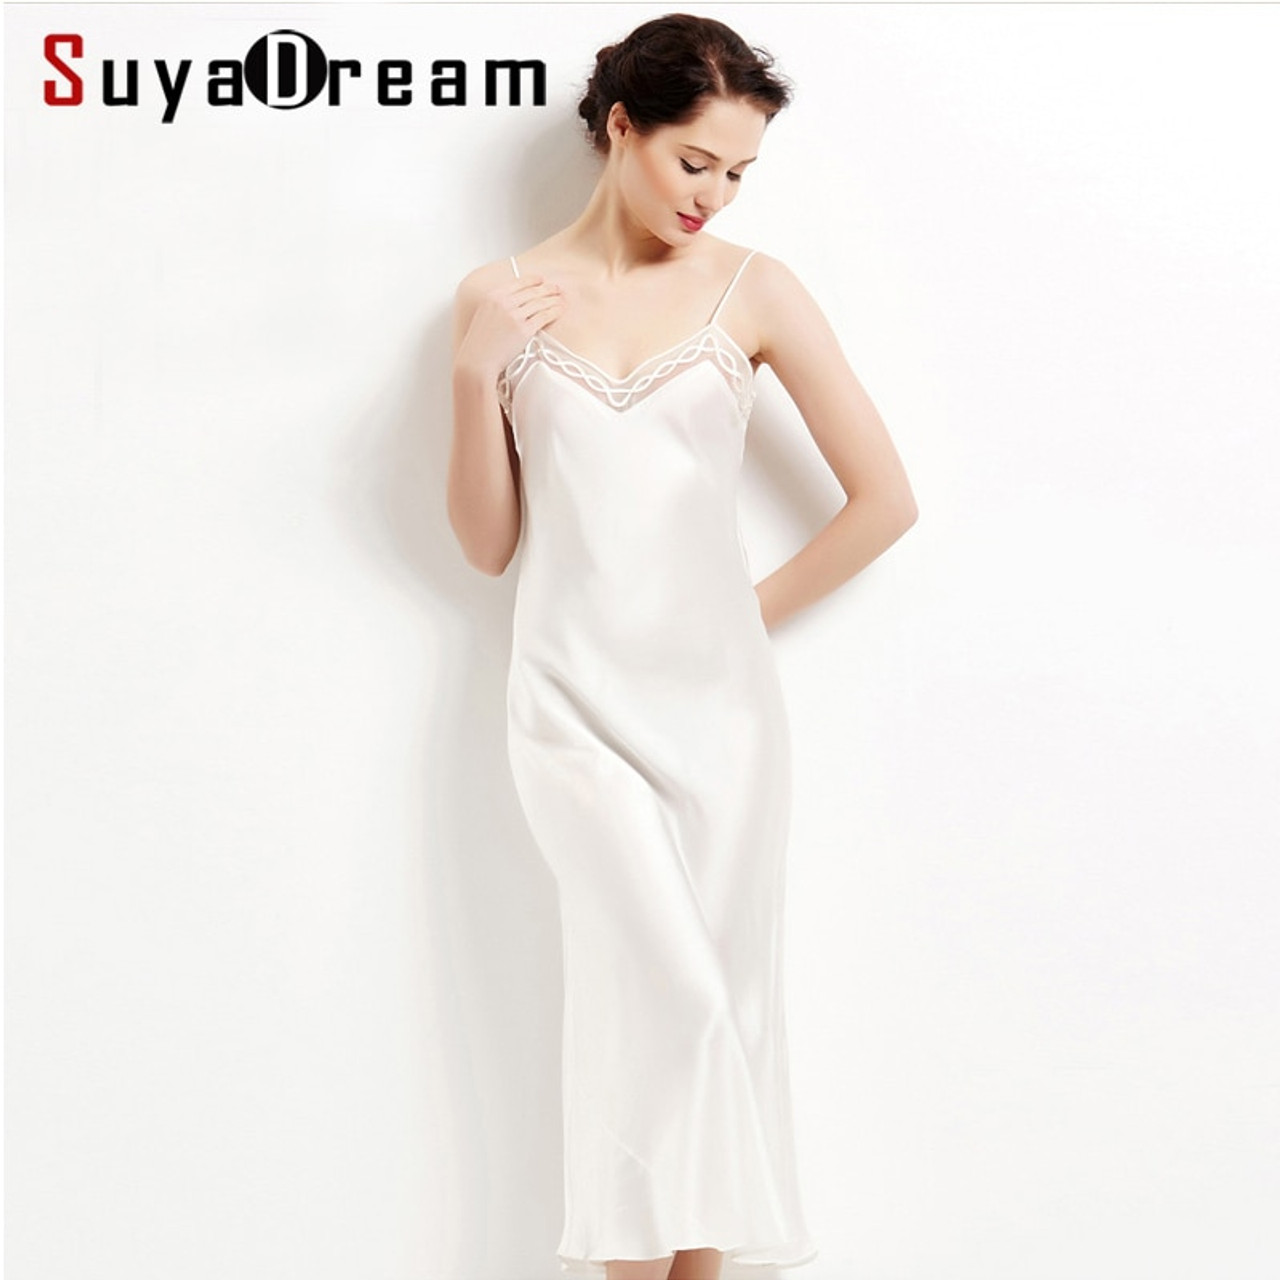 dddff295ff 100% pure silk long nightgowns women Sexy sleepwear Home dresses SILK  nightdress SATIN nightie Summer style dress White Black - OnshopDeals.Com